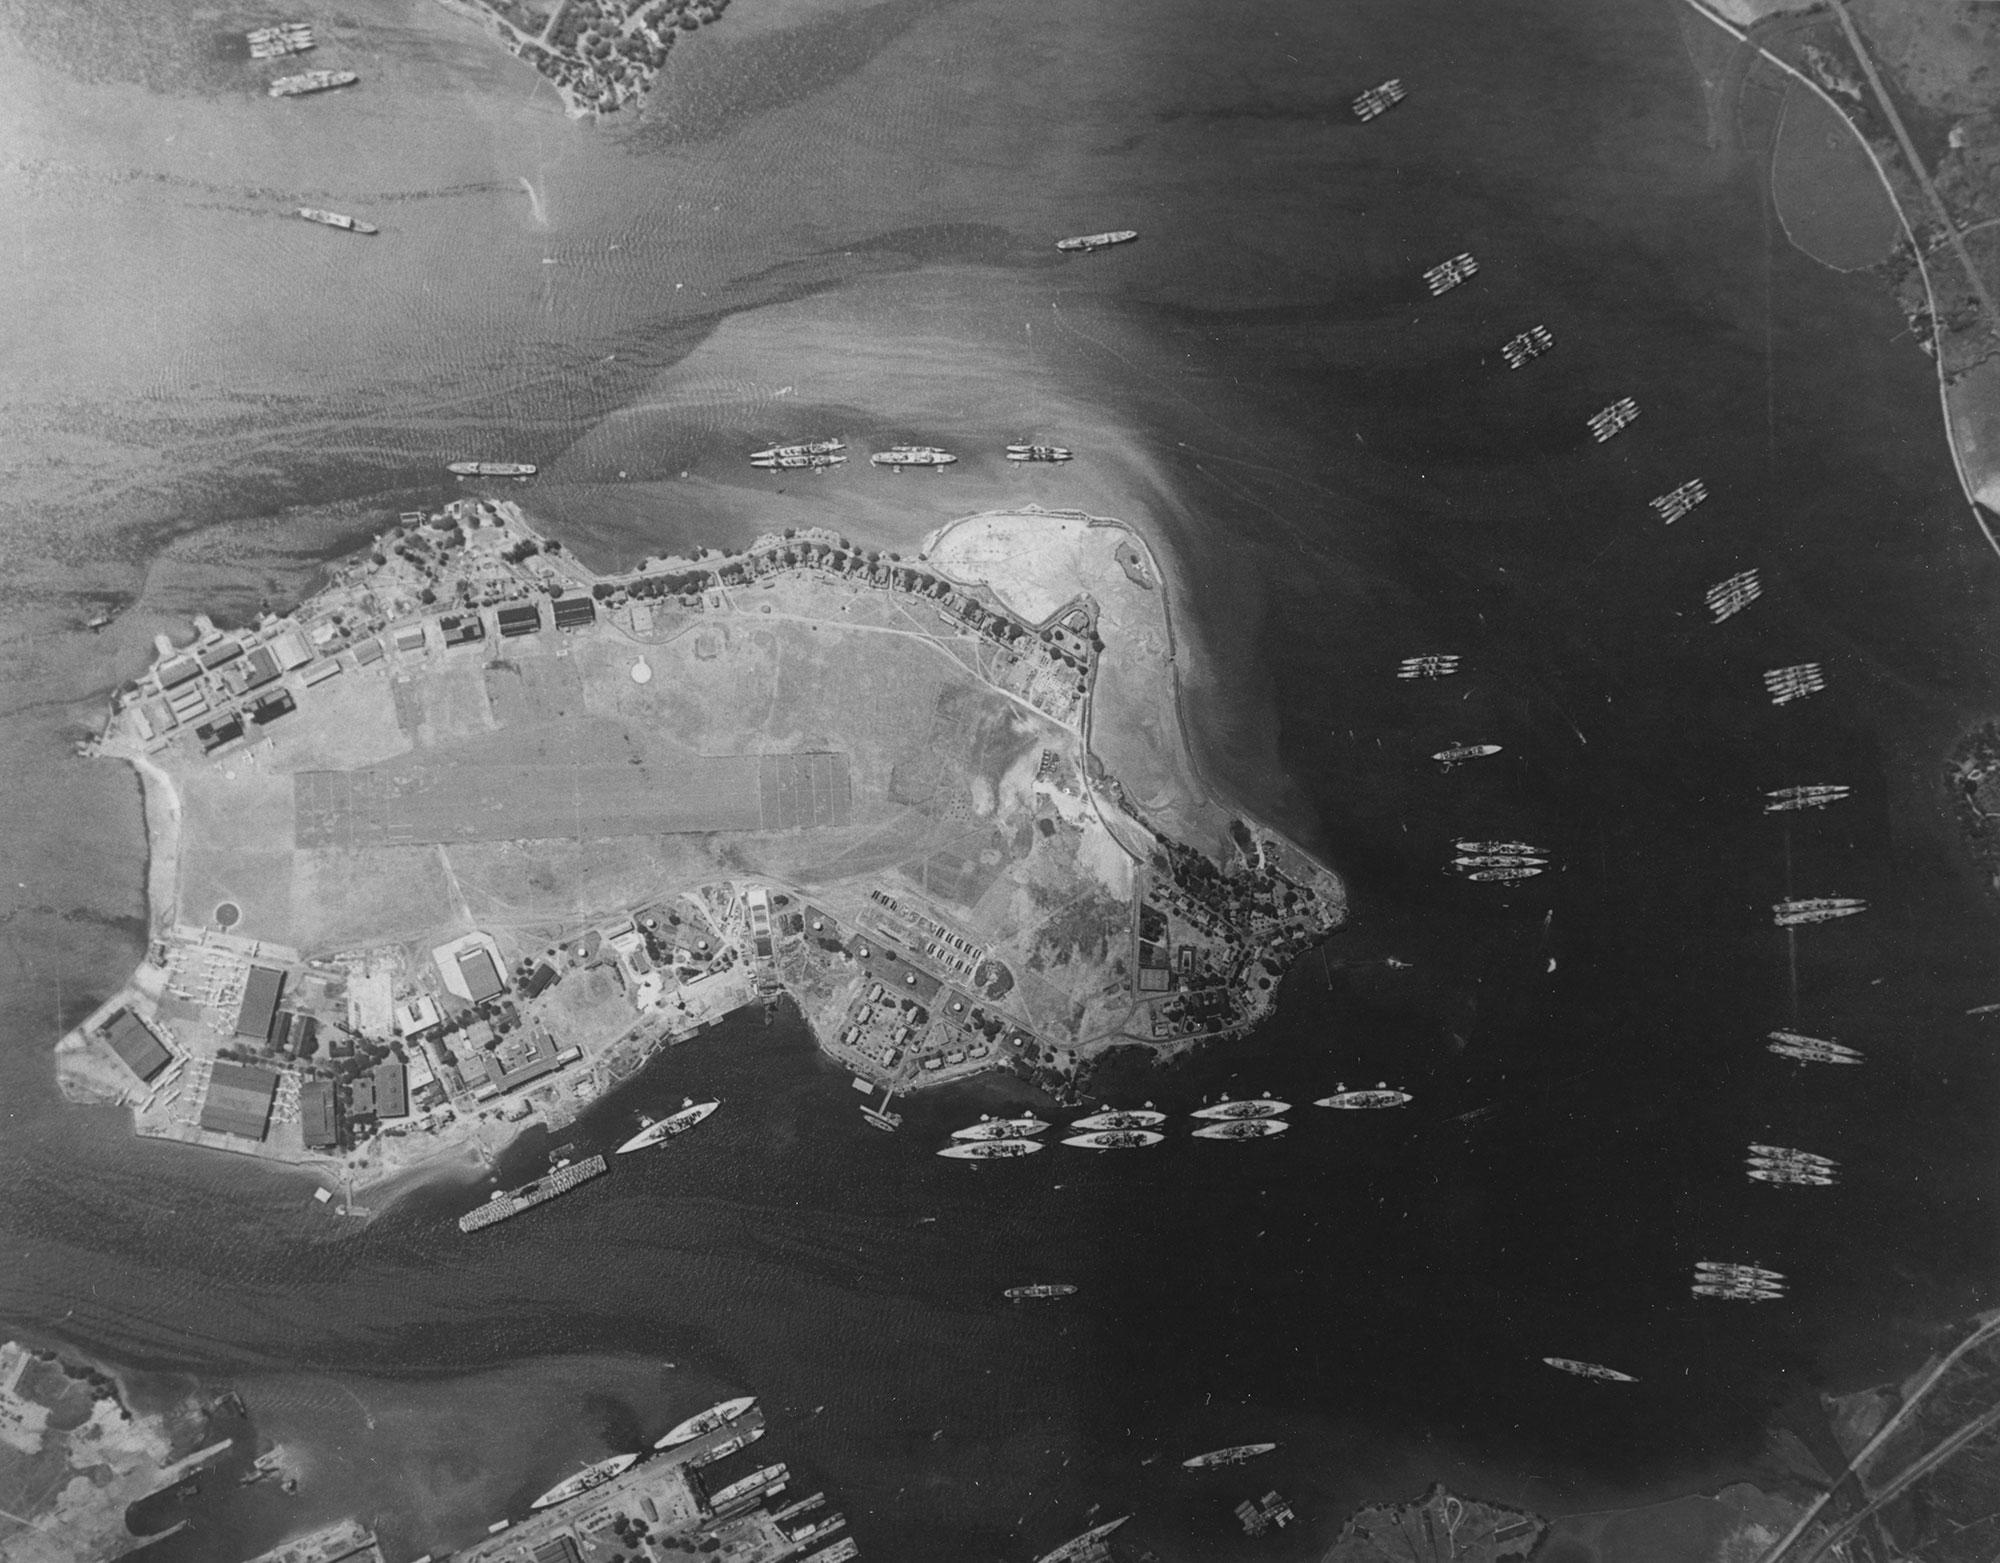 <p>An aerial photograph taken on May 3, 1940, the year before the Japanese raid, shows the East Loch and the the Fleet Air Base on Ford Island in Pearl Harbor. Visible are the carrier Yorktown, 10 battleships, 17 cruisers, two light cruisers and over 30 destroyers. (U.S. Navy/National Archives/Handout via Reuters) </p>